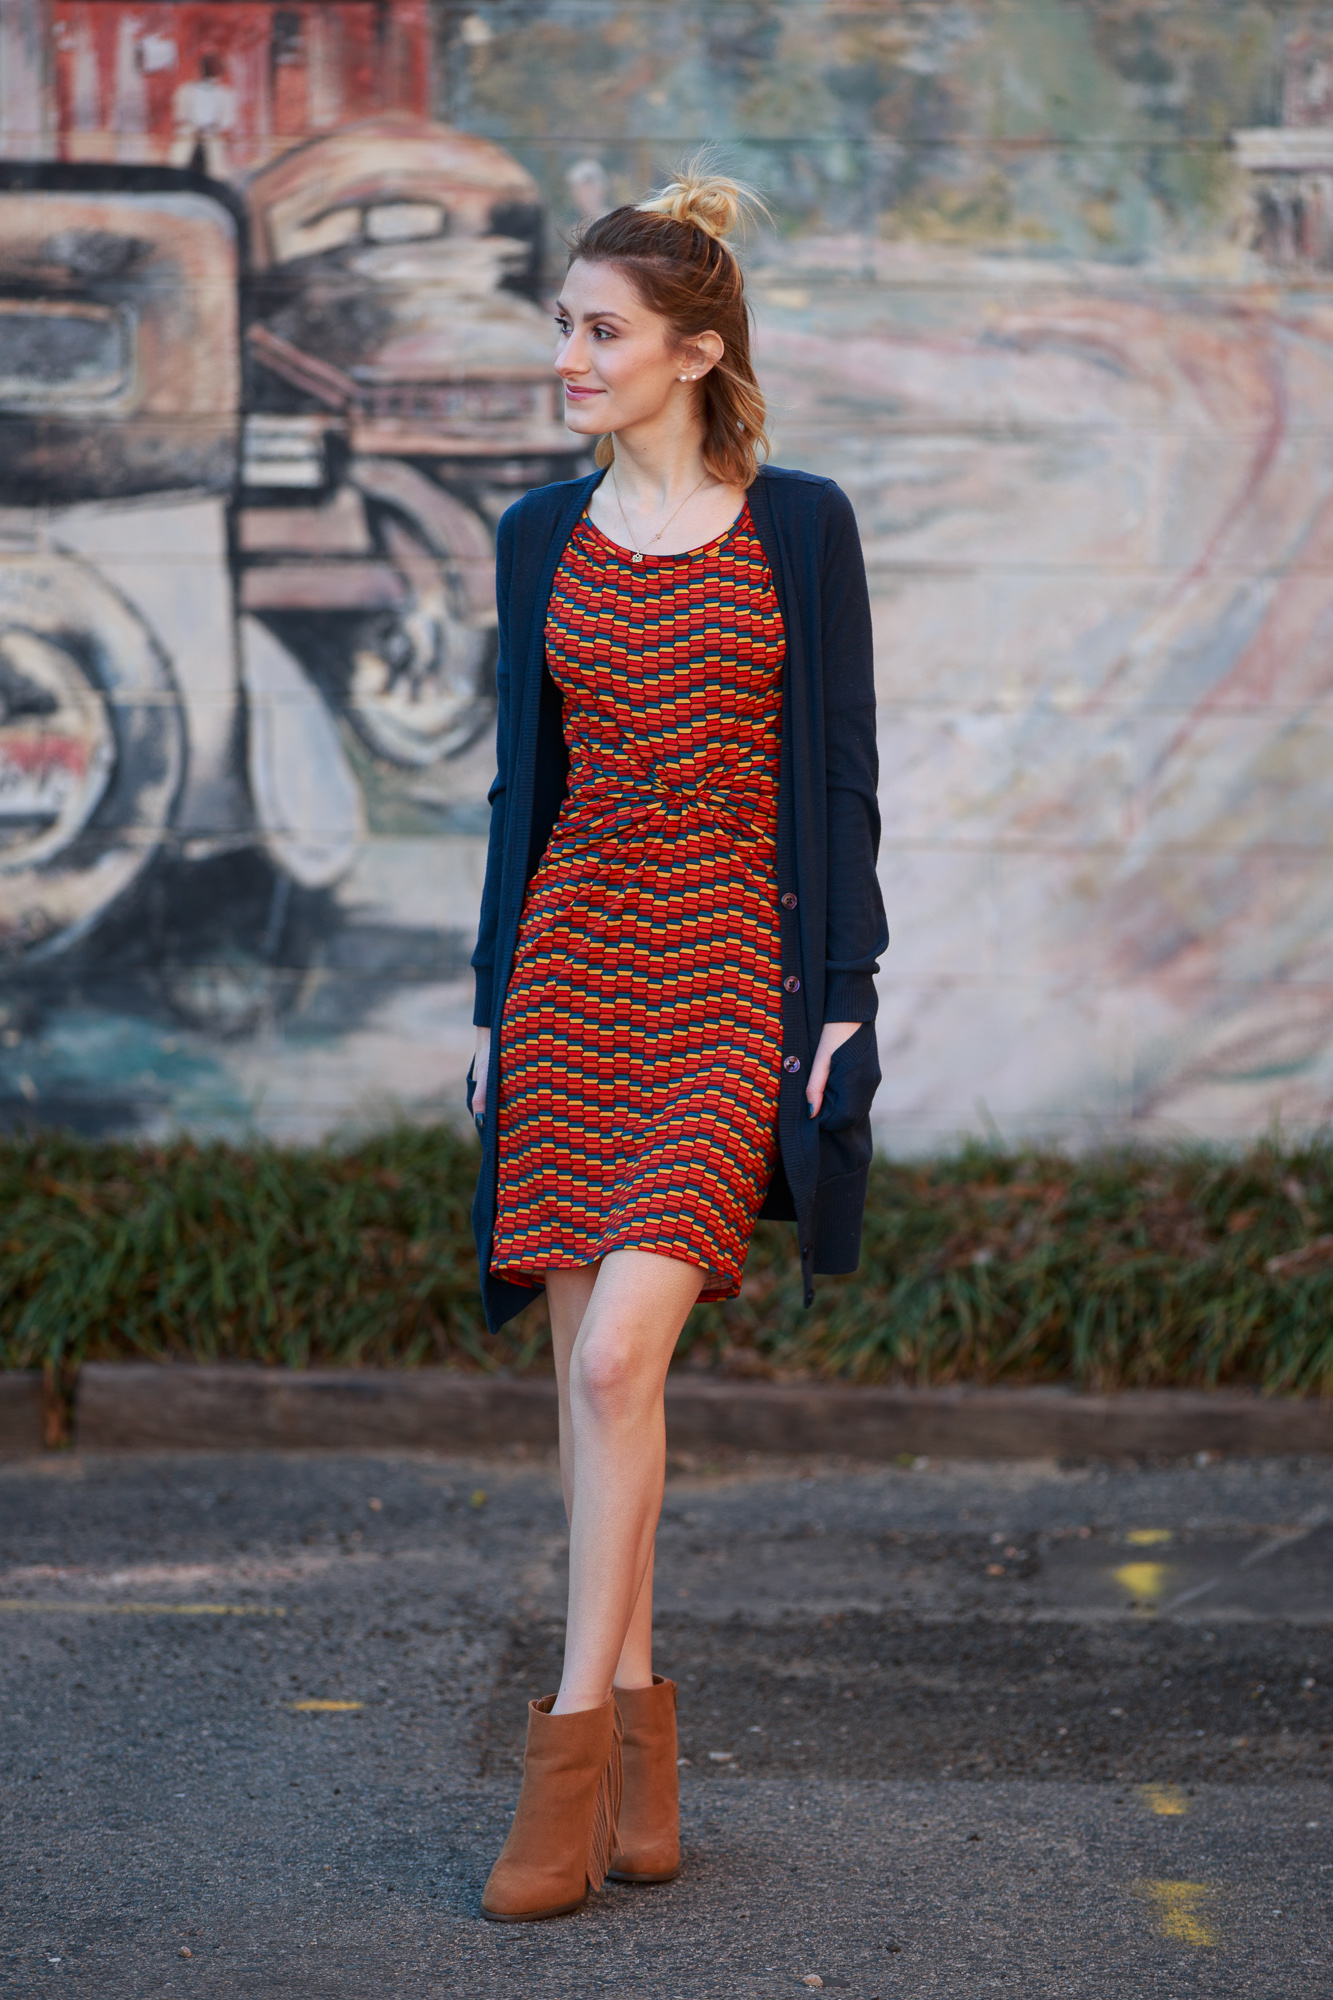 LulaRoe Julia Dress By Angela Lang photo shoot in Historic Downtown Cary North Carolina